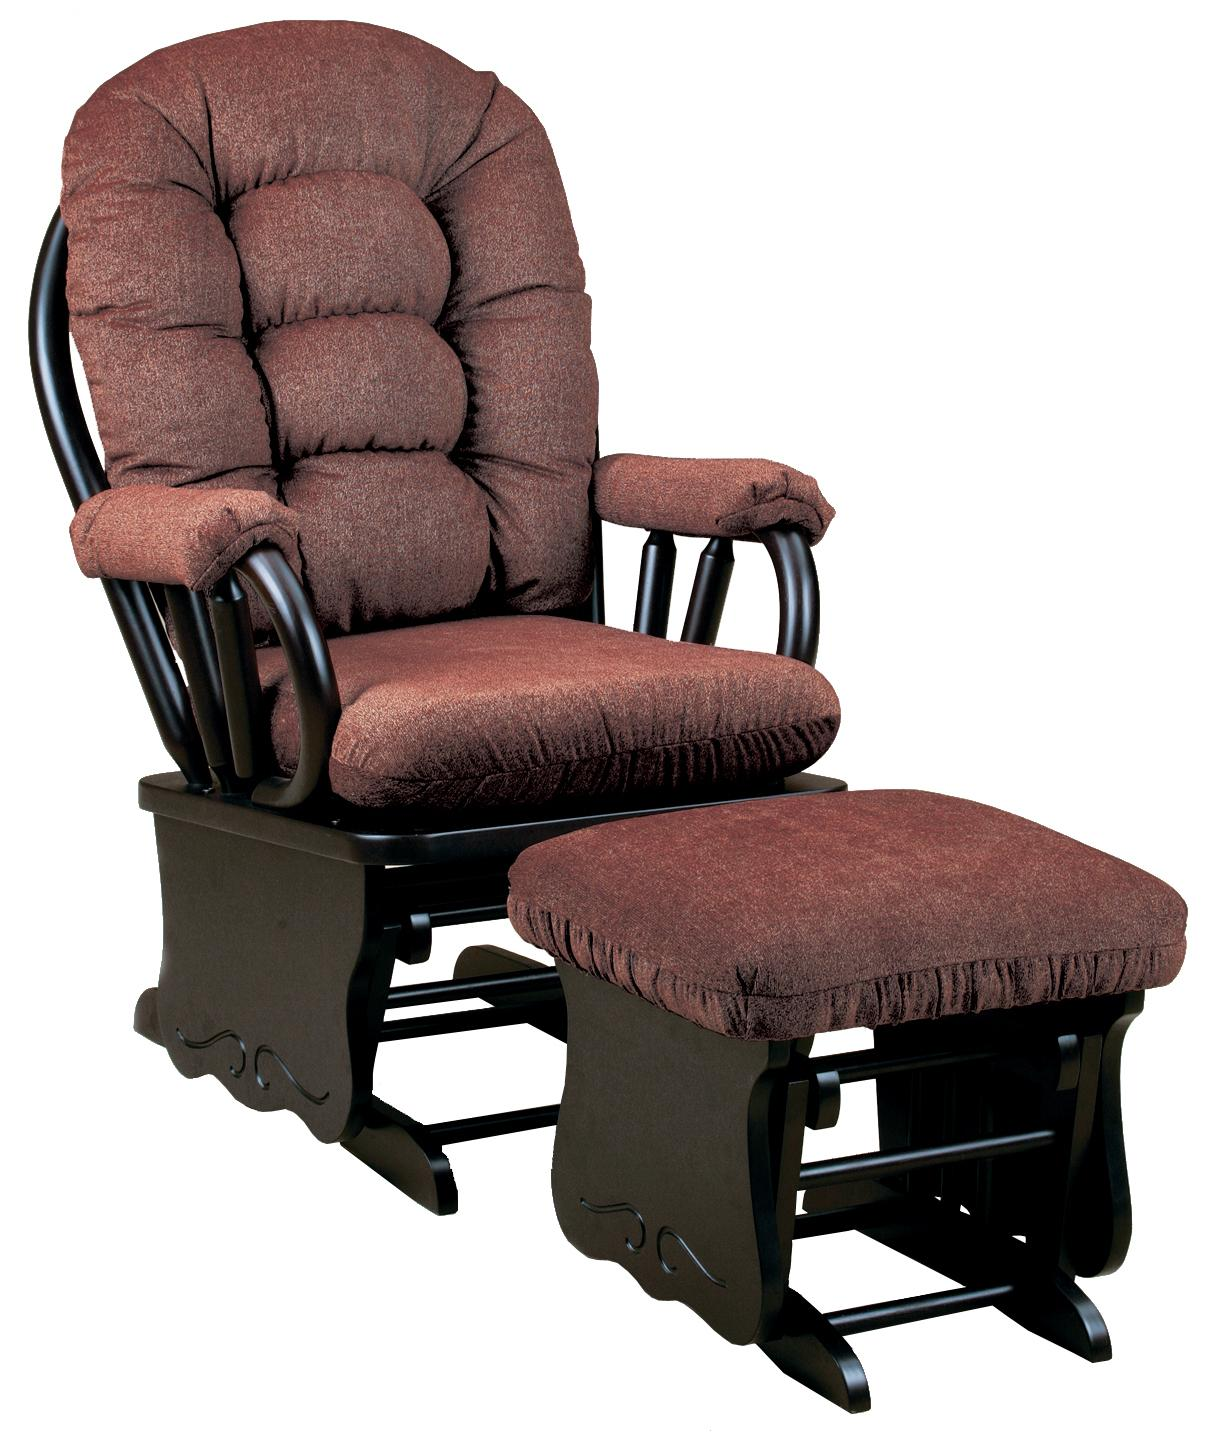 Gliding Rocking Chair Best Home Furnishings Bedazzle Locking Glider Rocker And